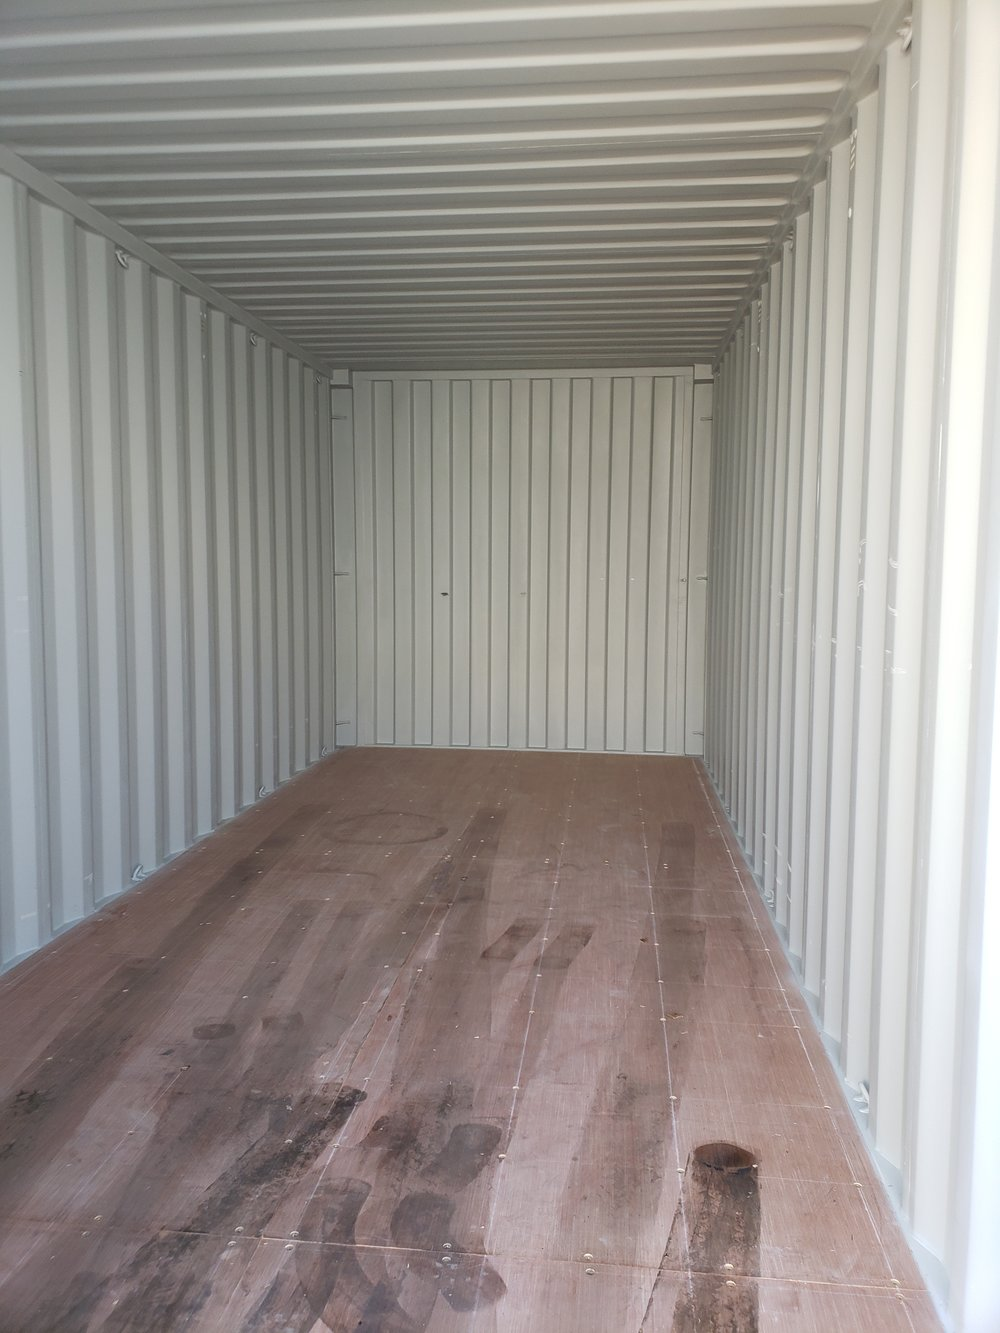 You can almost smell that new container smell!